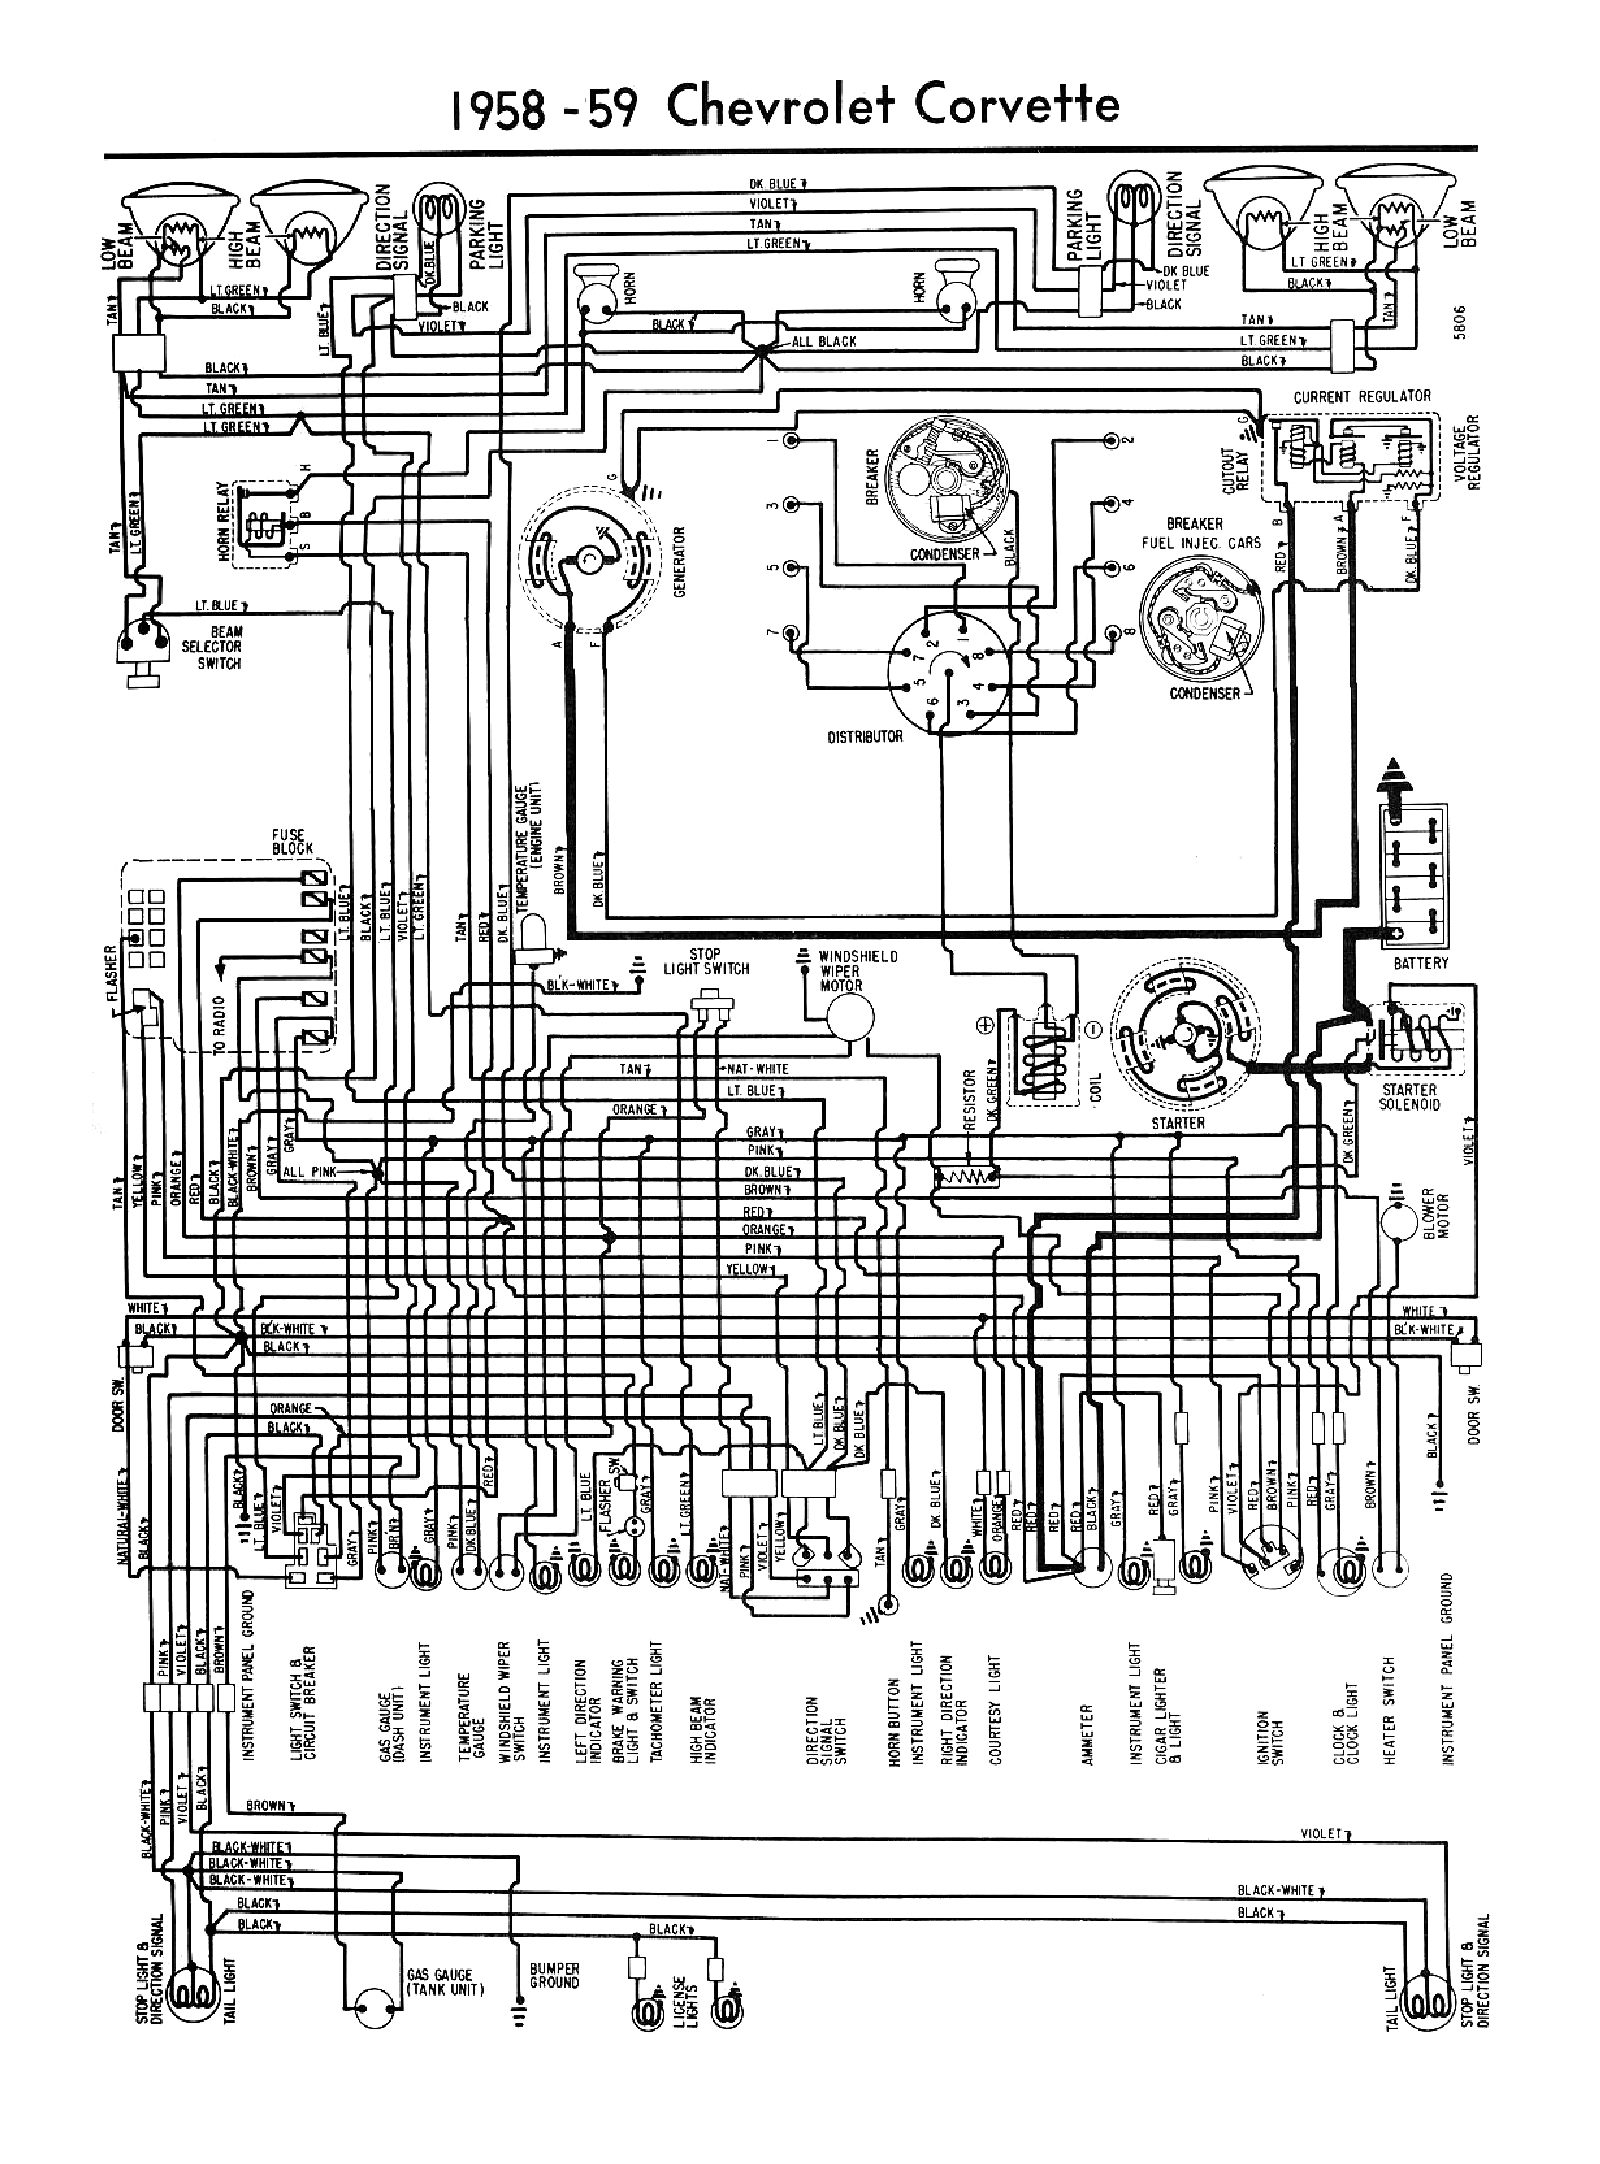 1979 gmc truck electrical wiring diagrams